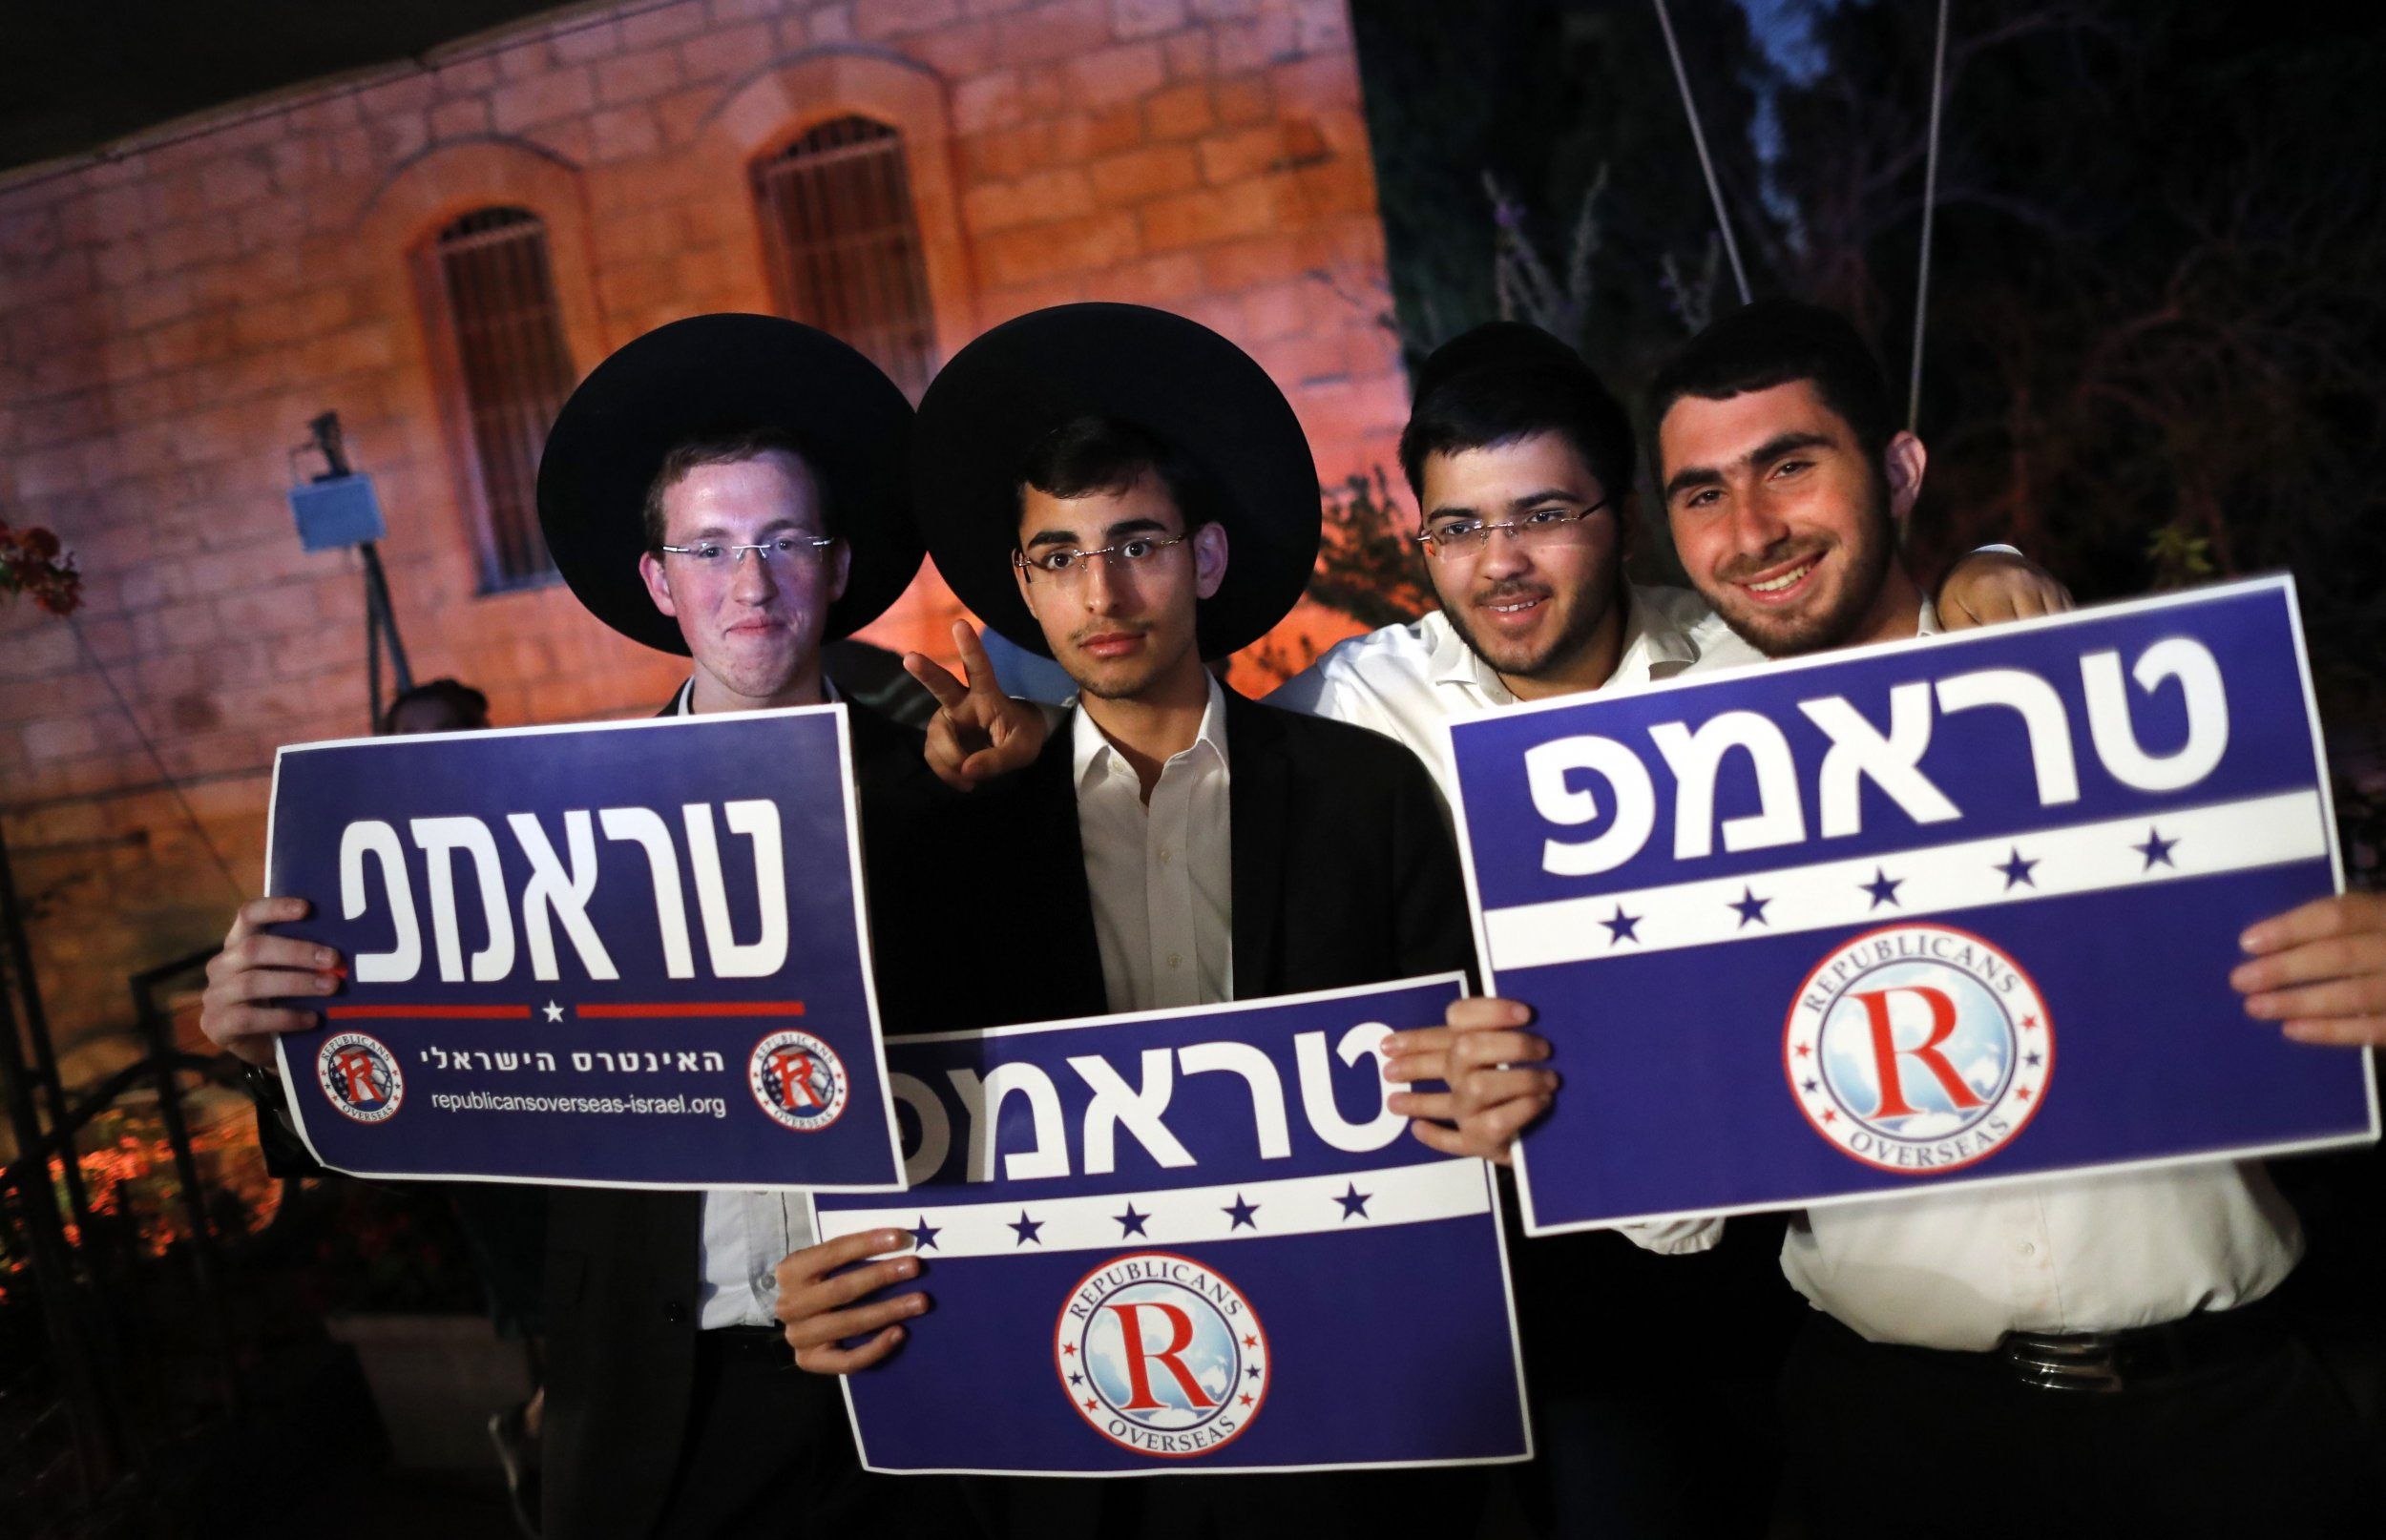 Trump supporters in Israel